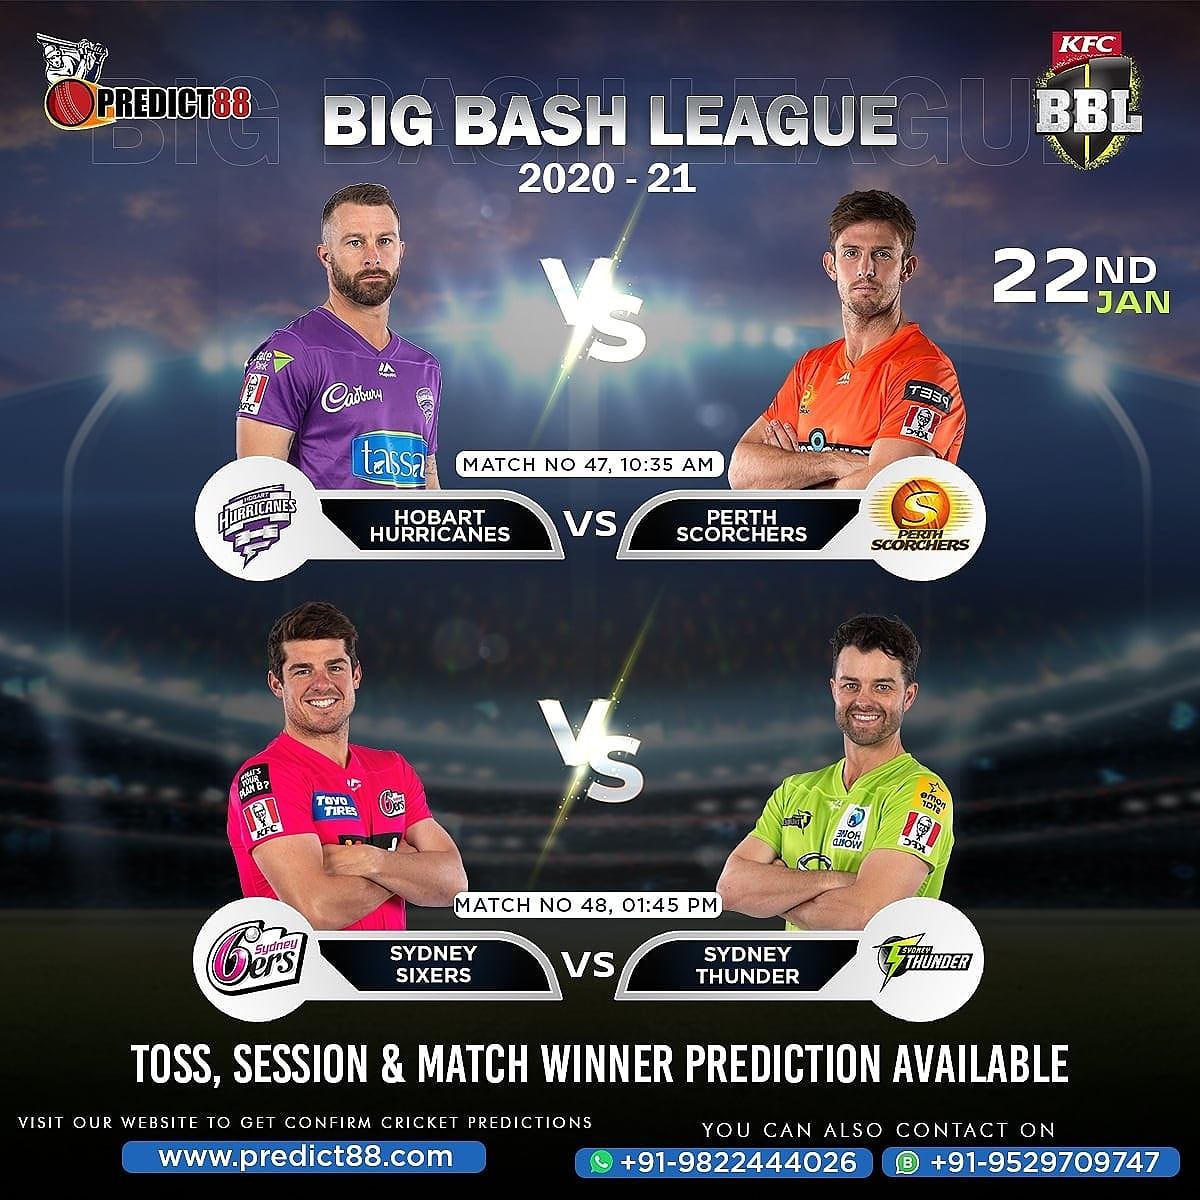 47th Match (10:35 AM) Hobart Hurricanes vs Perth Scorchers  48th Match (1:45 PM)  Sydney Sixers vs Sydney Thunder  Full Match Report (Toss, Session & Match Winner) Of Big Bash League Is Available On Website. For More Information Contact on Whatsapp. #predict88 #bbl #bigbashleague https://t.co/tD7ysAX1cL